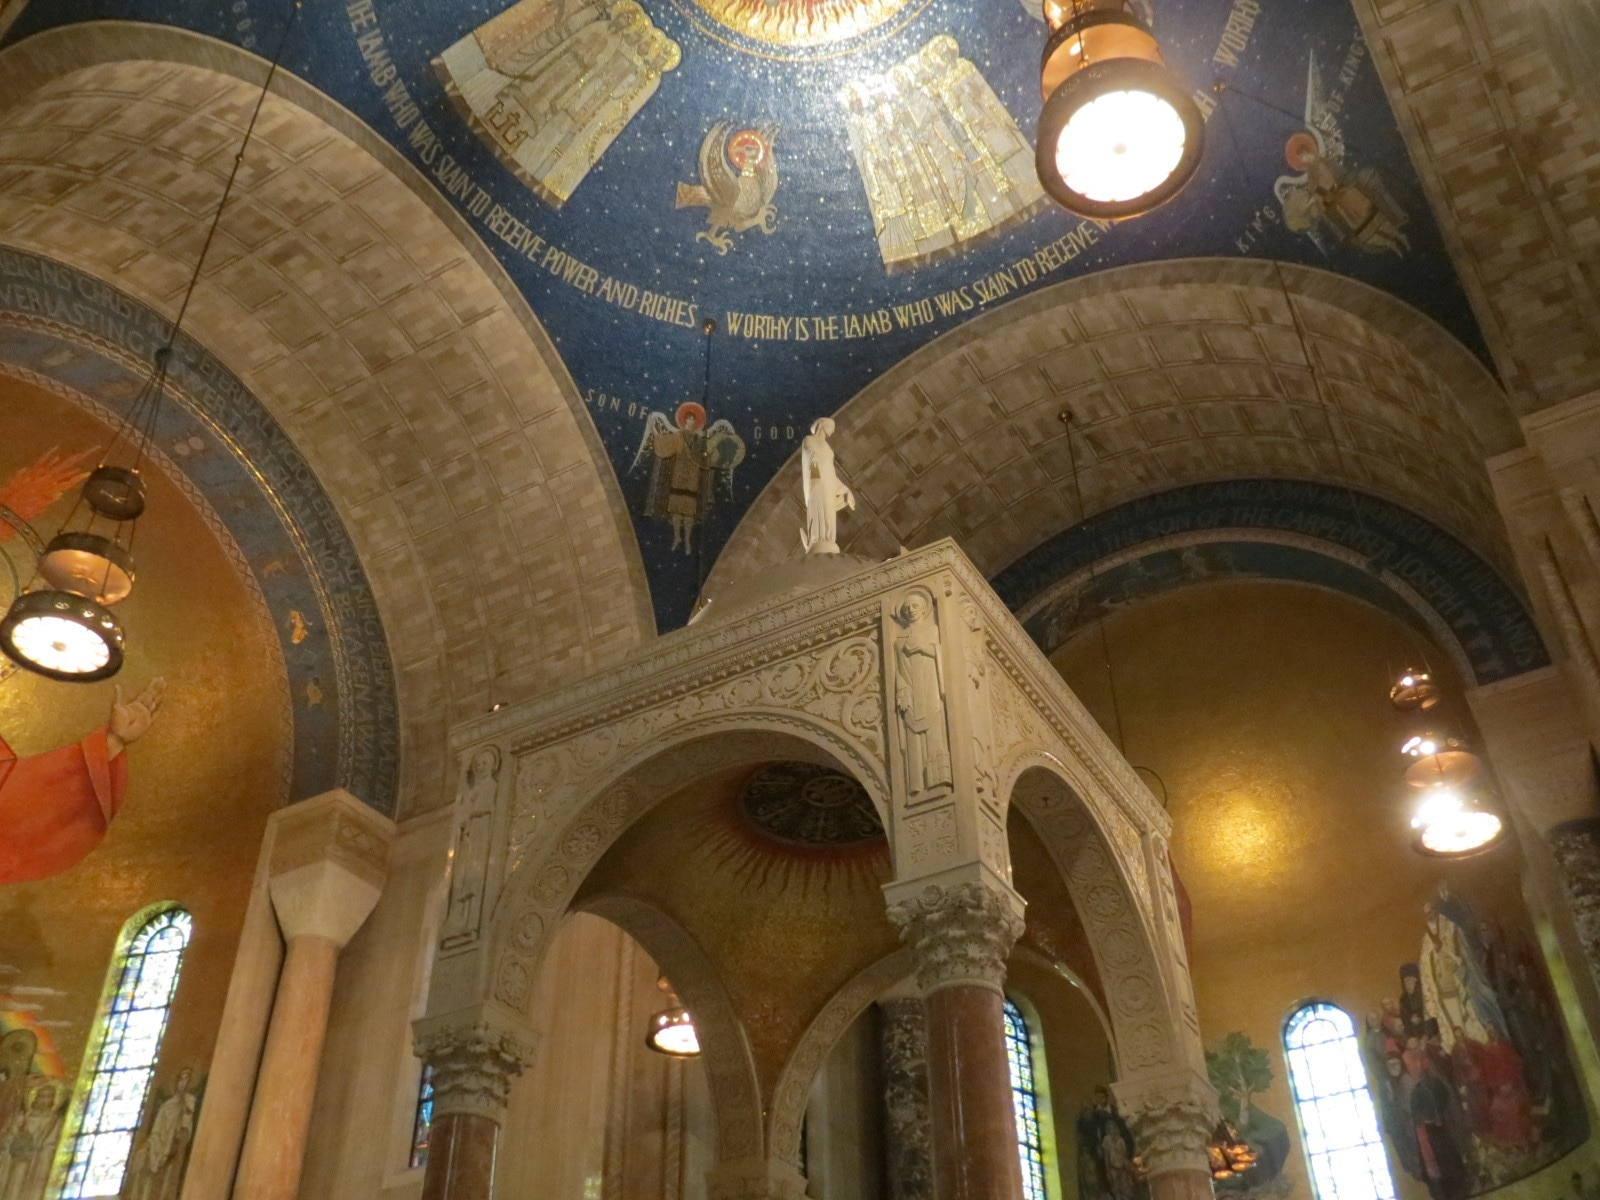 Basilica of the National Shrine of the Immaculate Conception, Washington, District of Columbia, United States of America